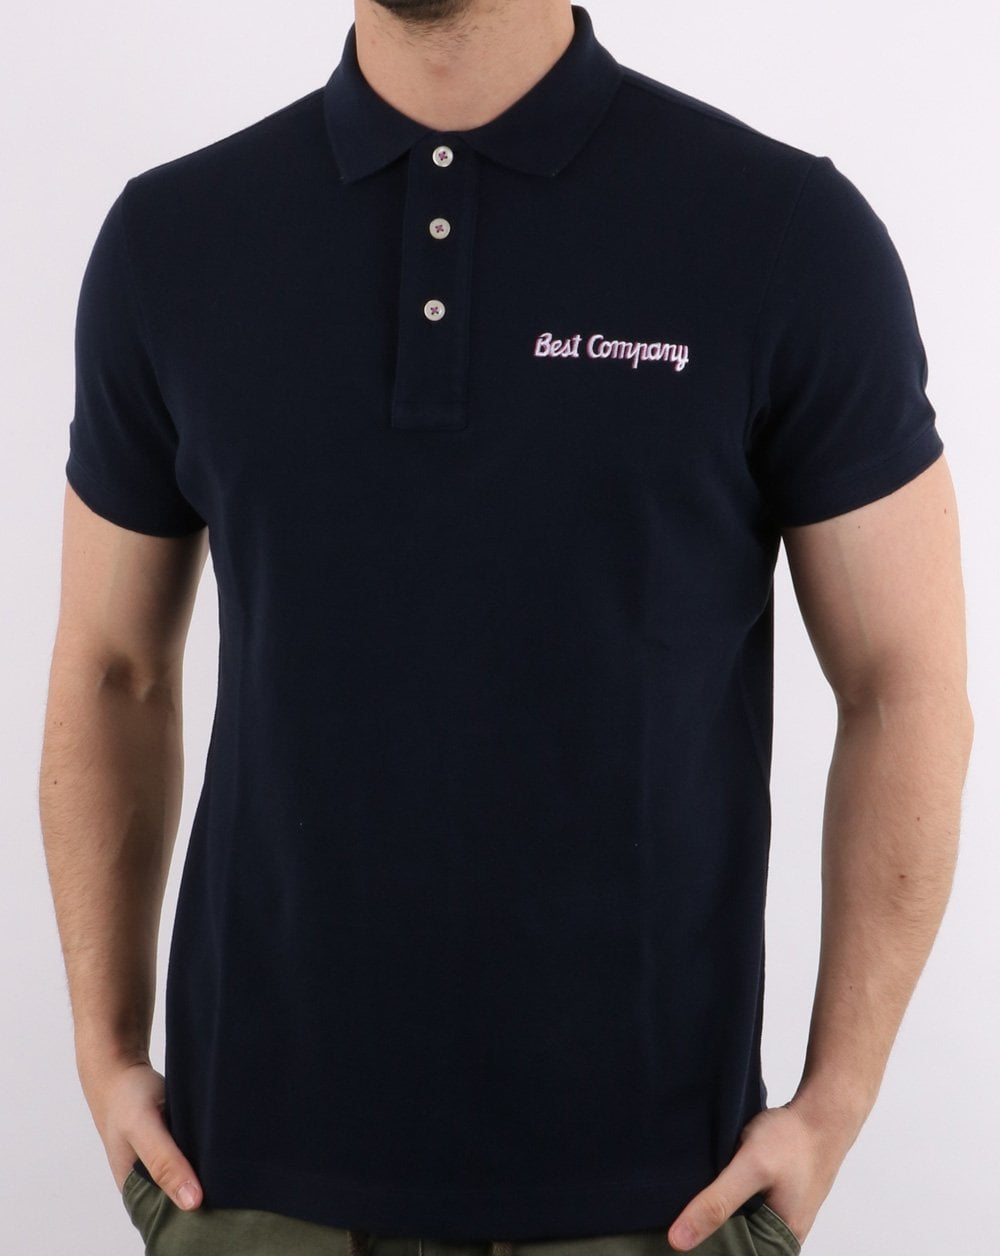 Best Company Pique Polo Shirt Navy